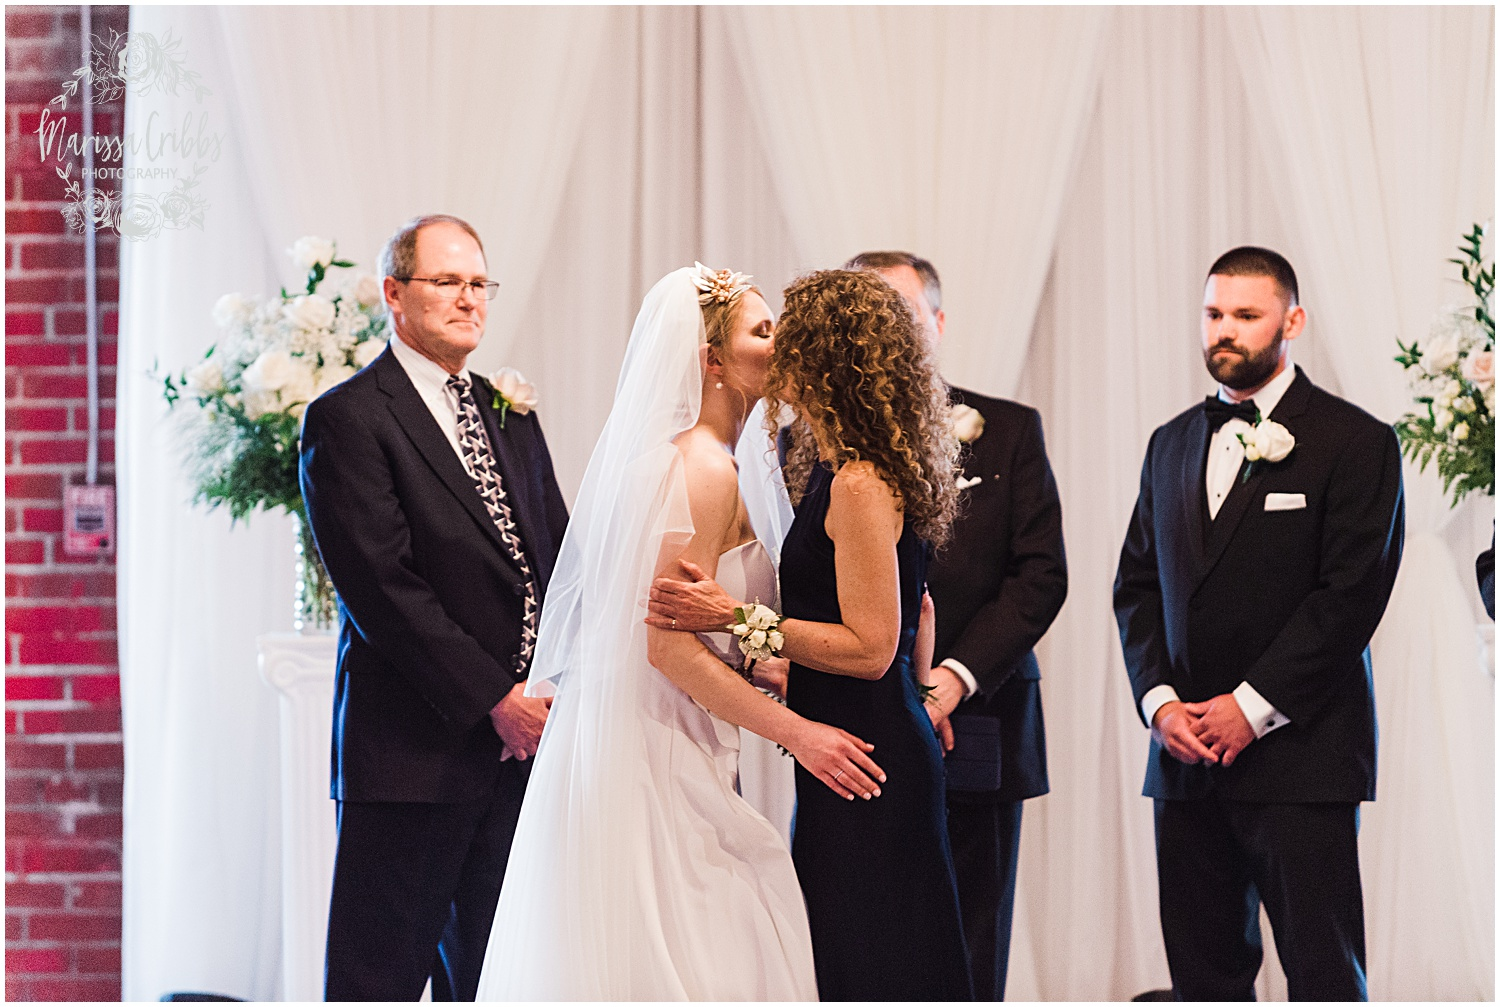 ABBY & CHARLIE WEDDING | THE HUDSON EVENT SPACE WEDDING | MARISSA CRIBBS PHOTOGRAPHY_7551.jpg